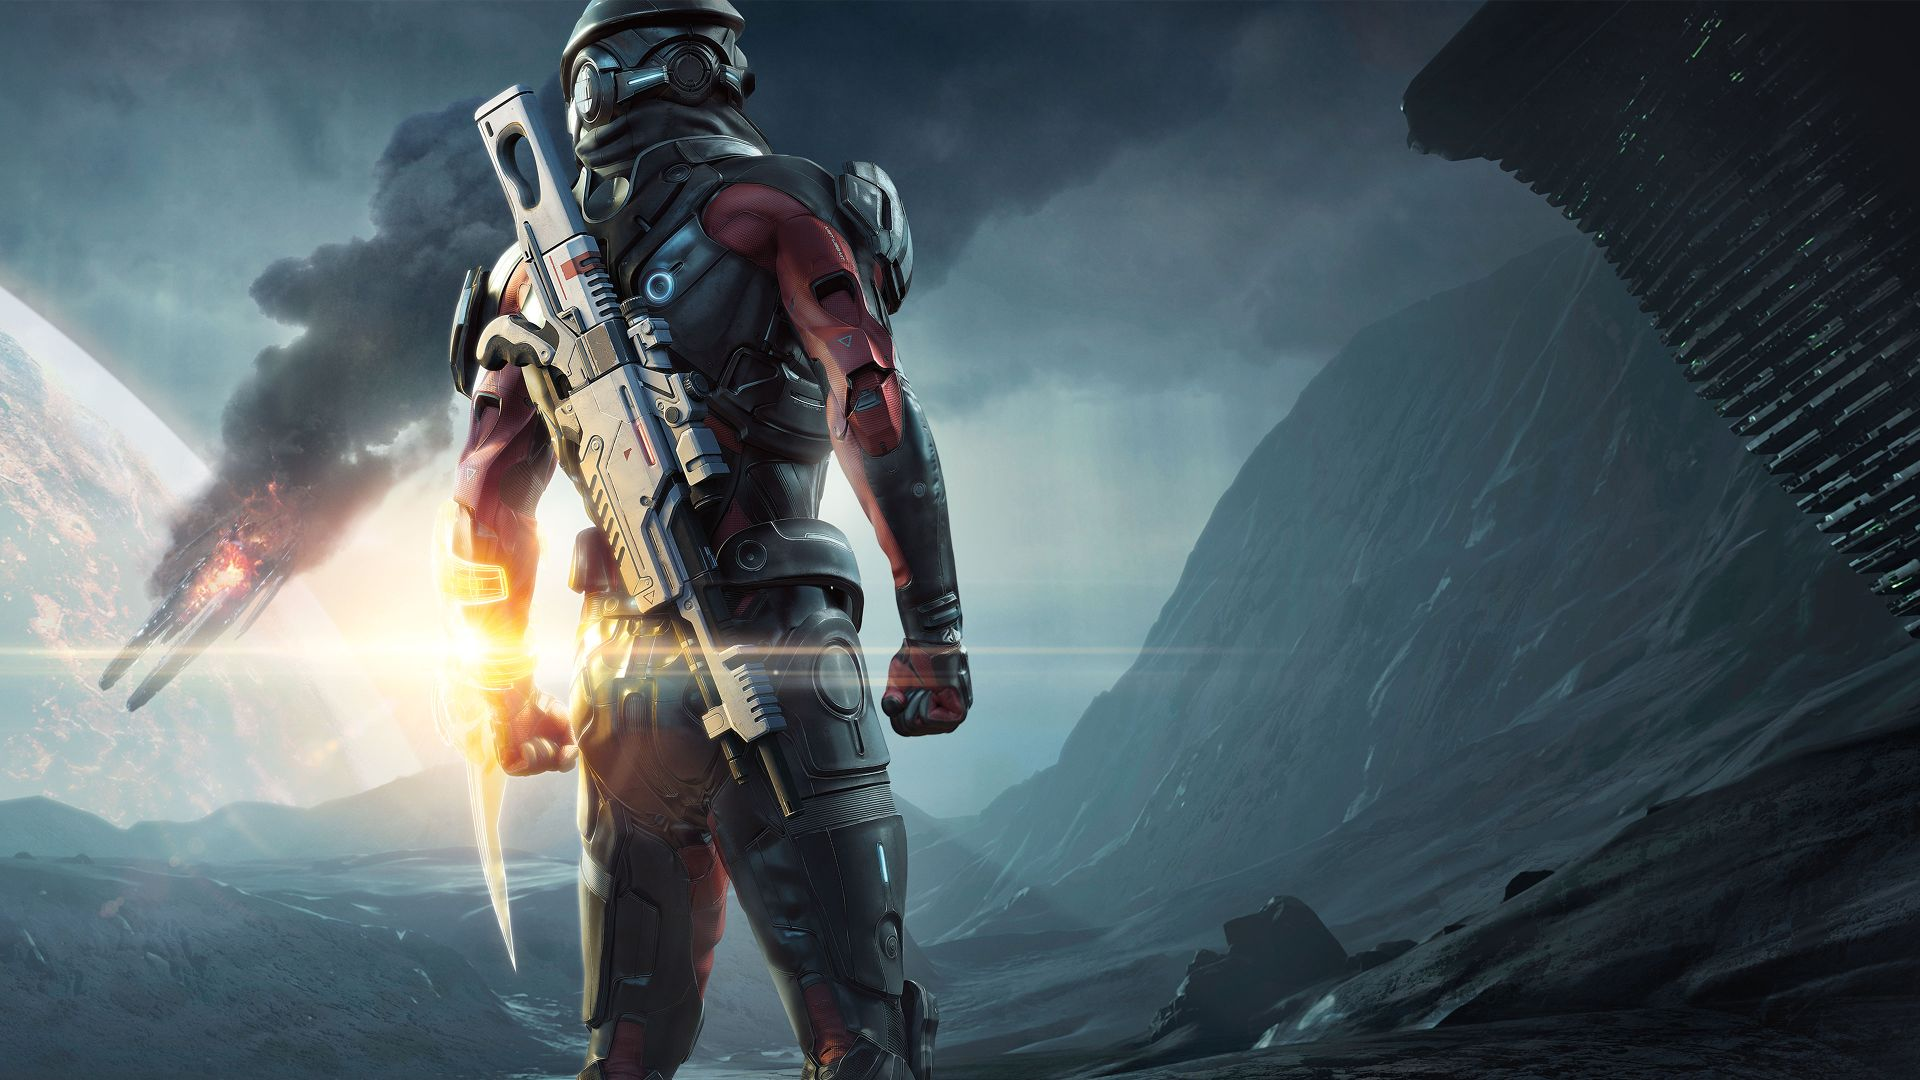 First Access Impressions: Mass Effect: Andromeda's Multiplayer has Potential, but also Flaws.